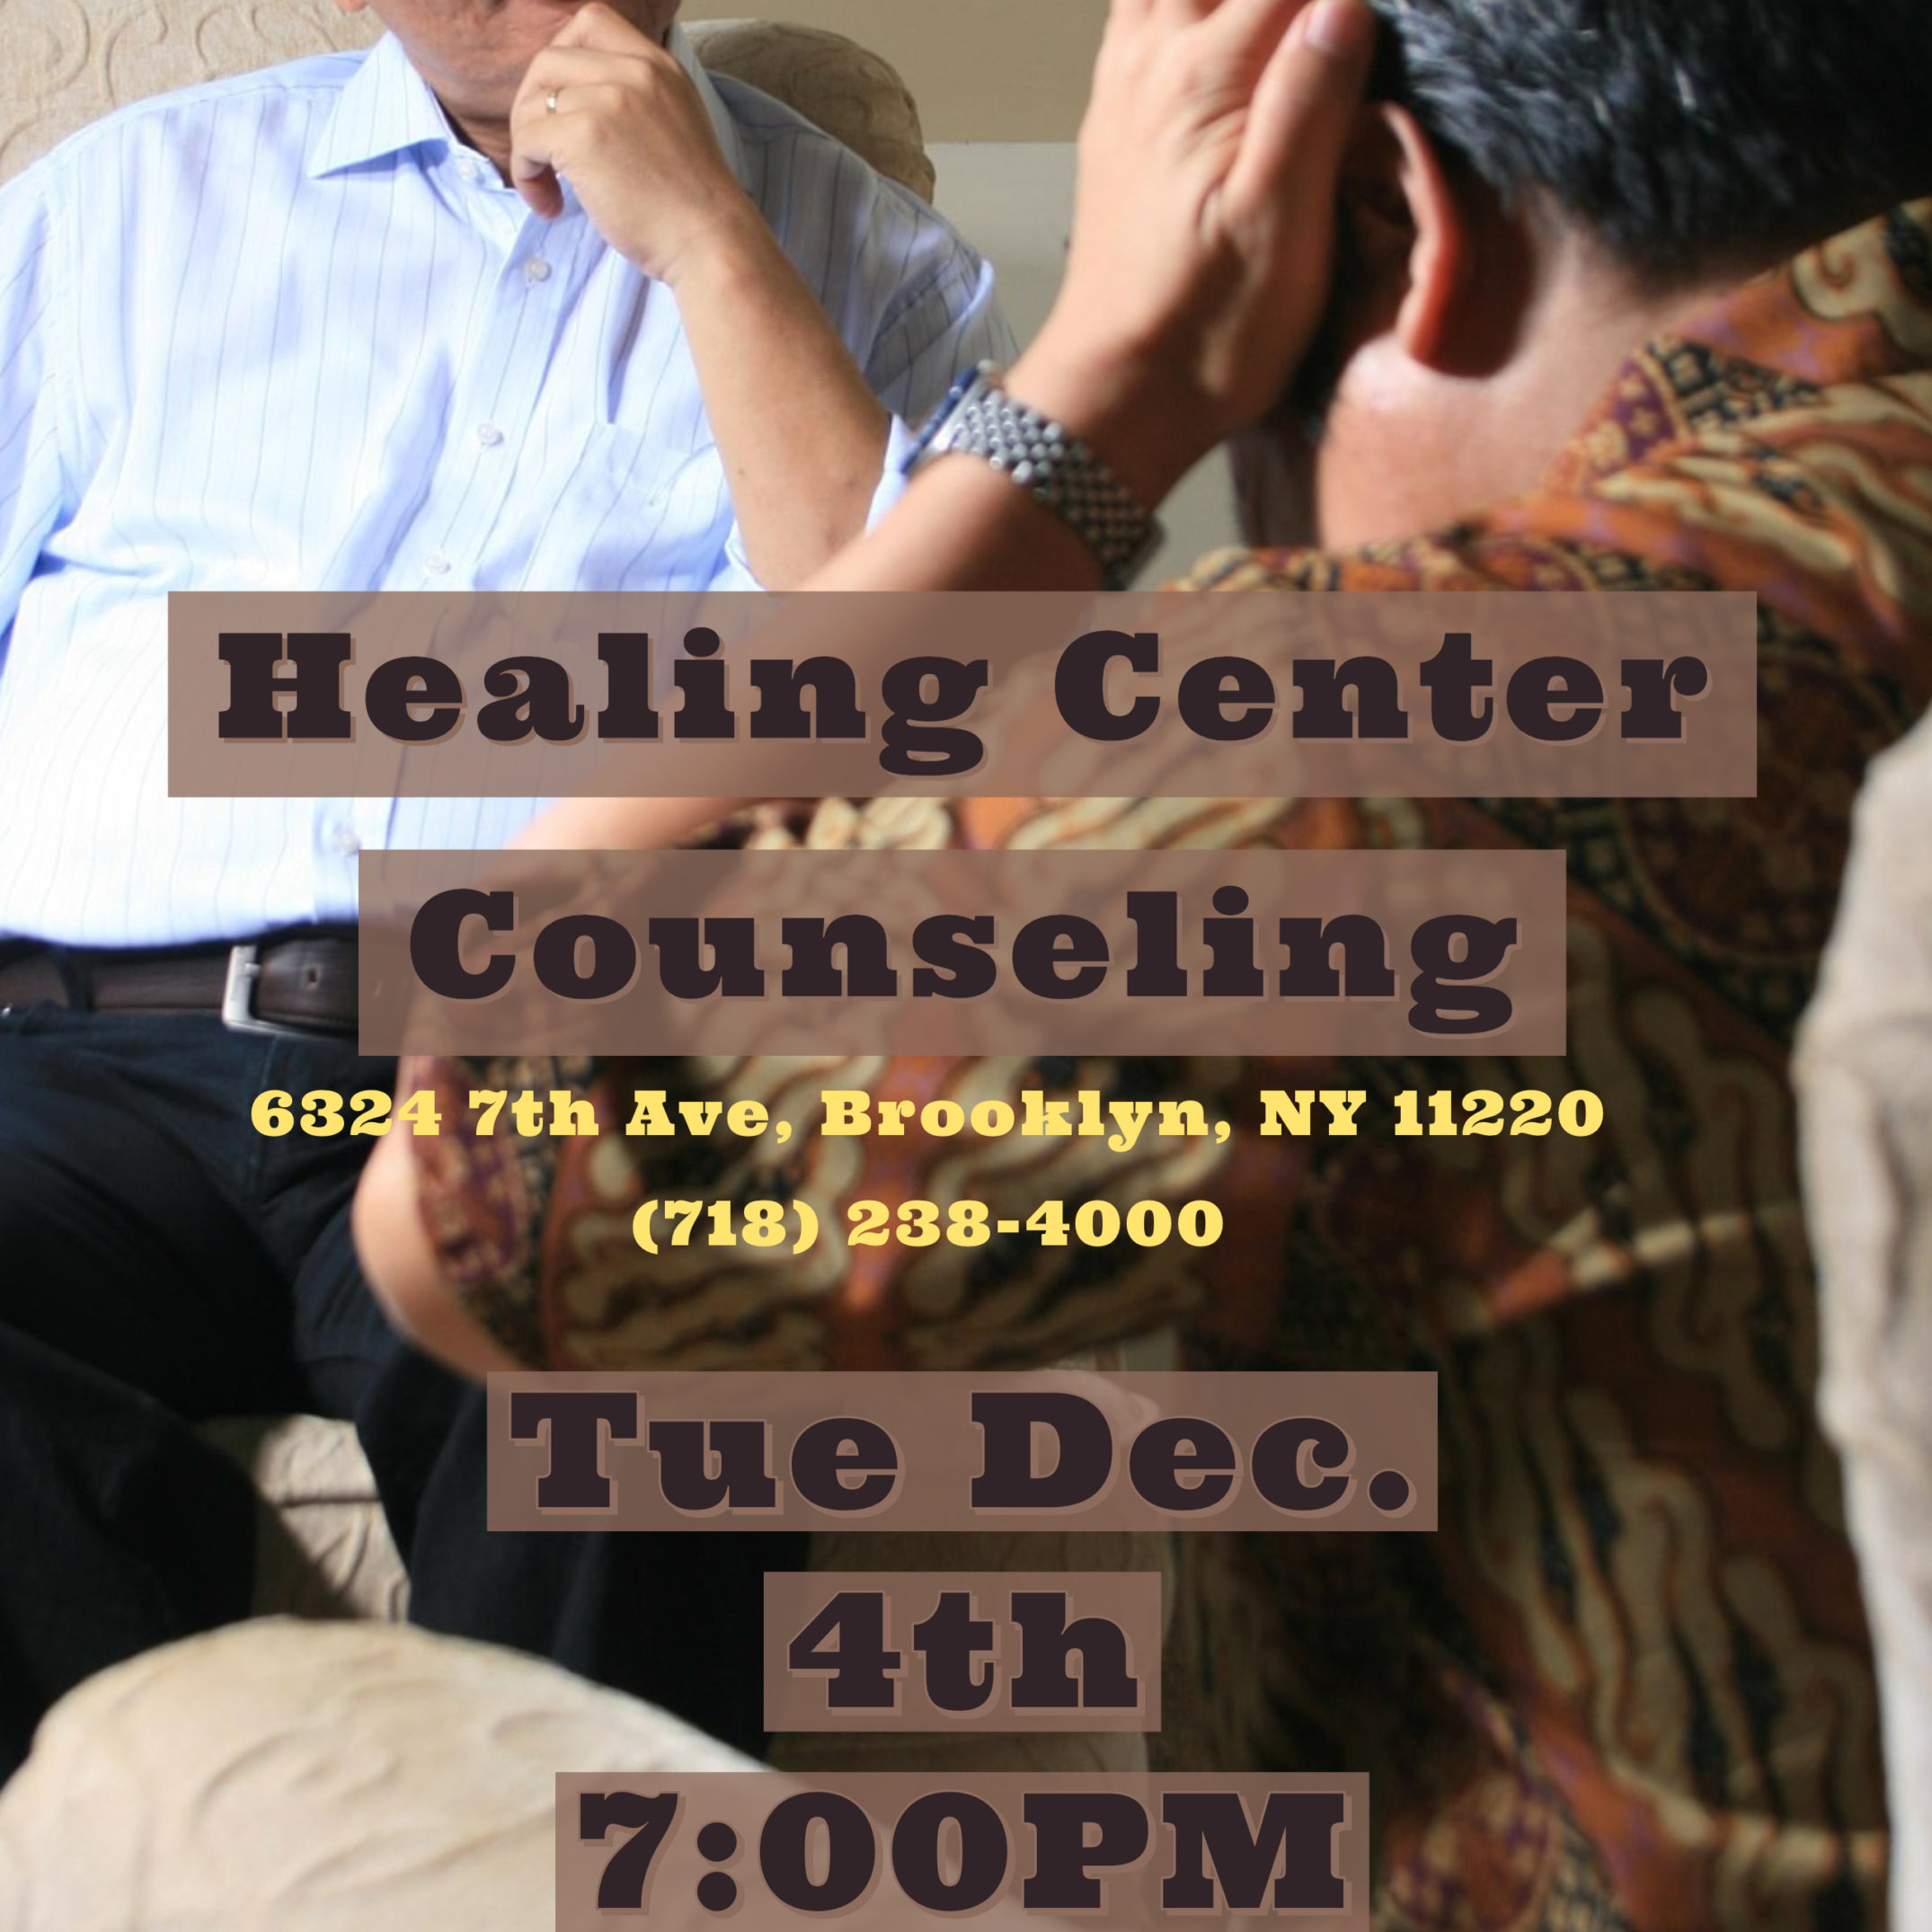 Healing Center Counseling